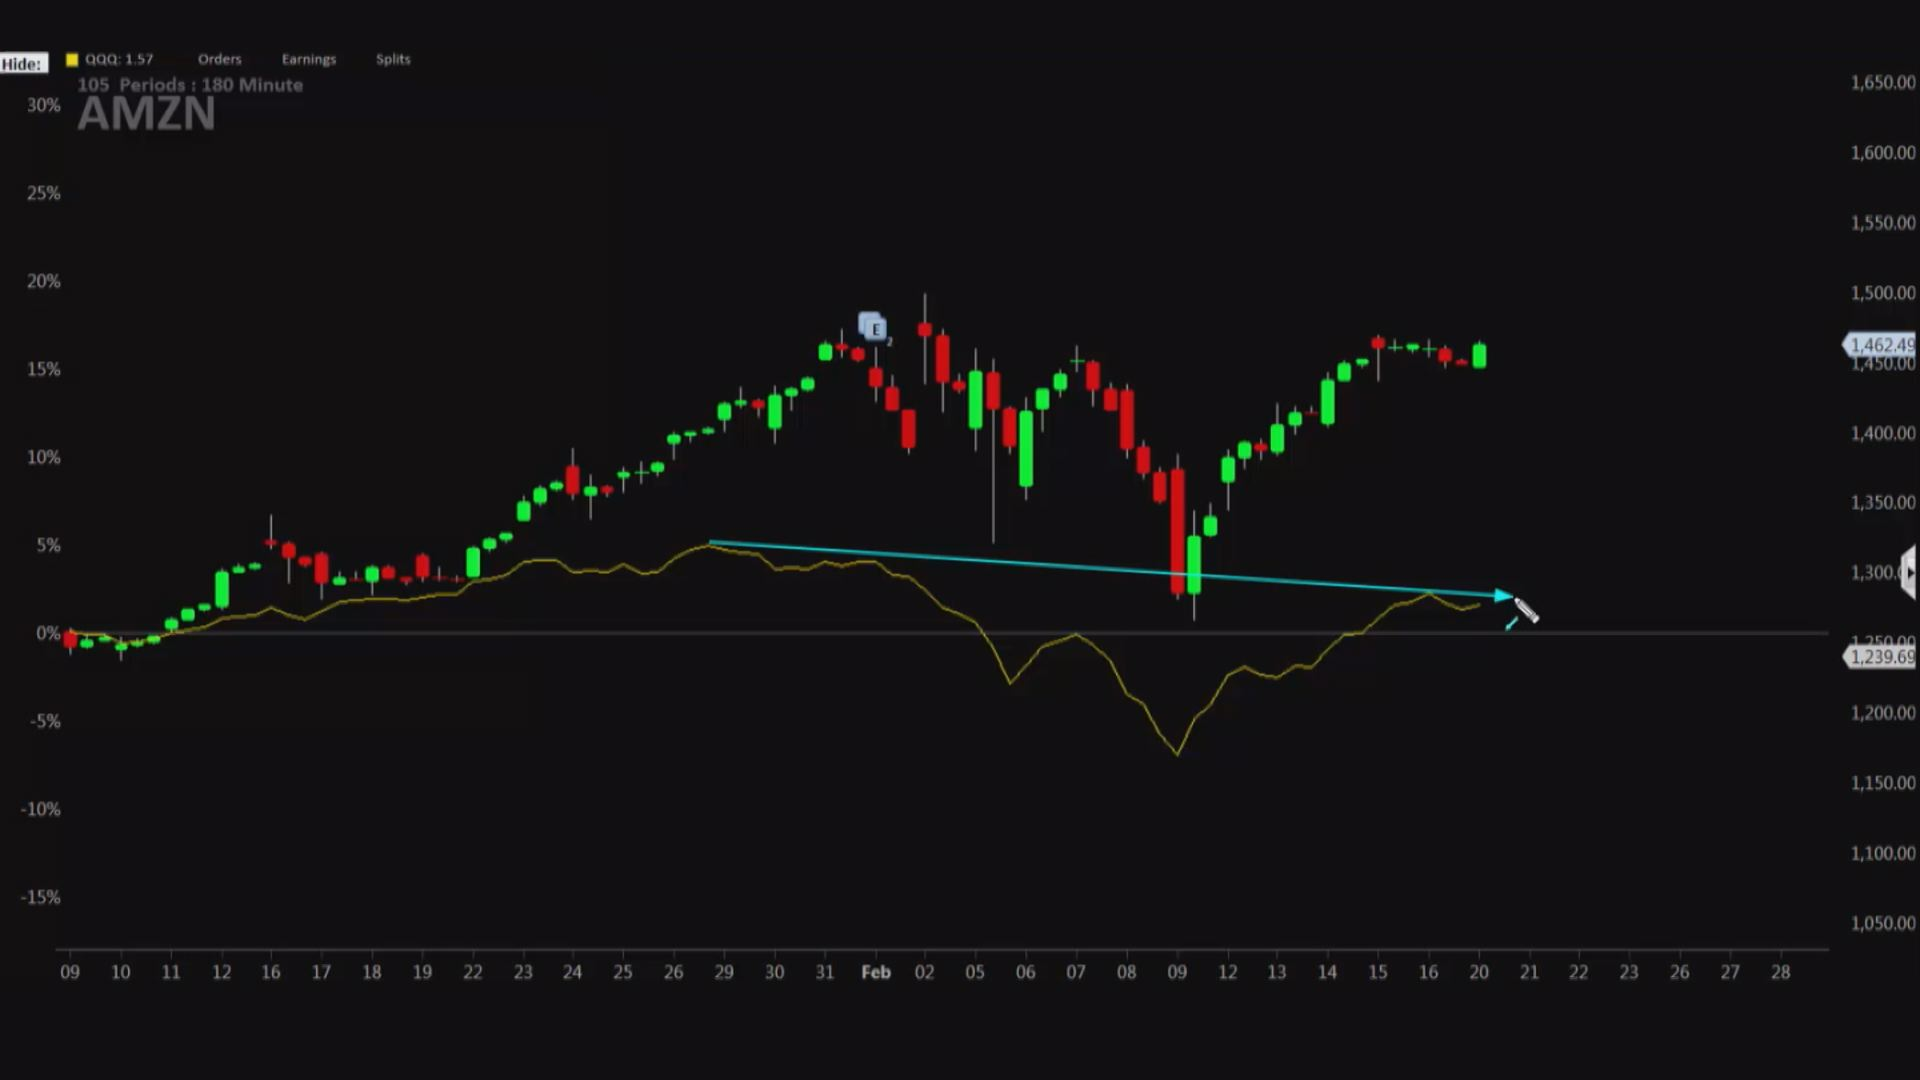 ... of what we\u0027ve lost since Jan. 26\  he said Tuesday on CNBC\u0027s\ Trading Nation.\  \ But we can see that Amazon is knocking on the door here for a breakout.\  & Amazon is \u0027knocking on the door\u0027 for a breakout to $1500 says trader